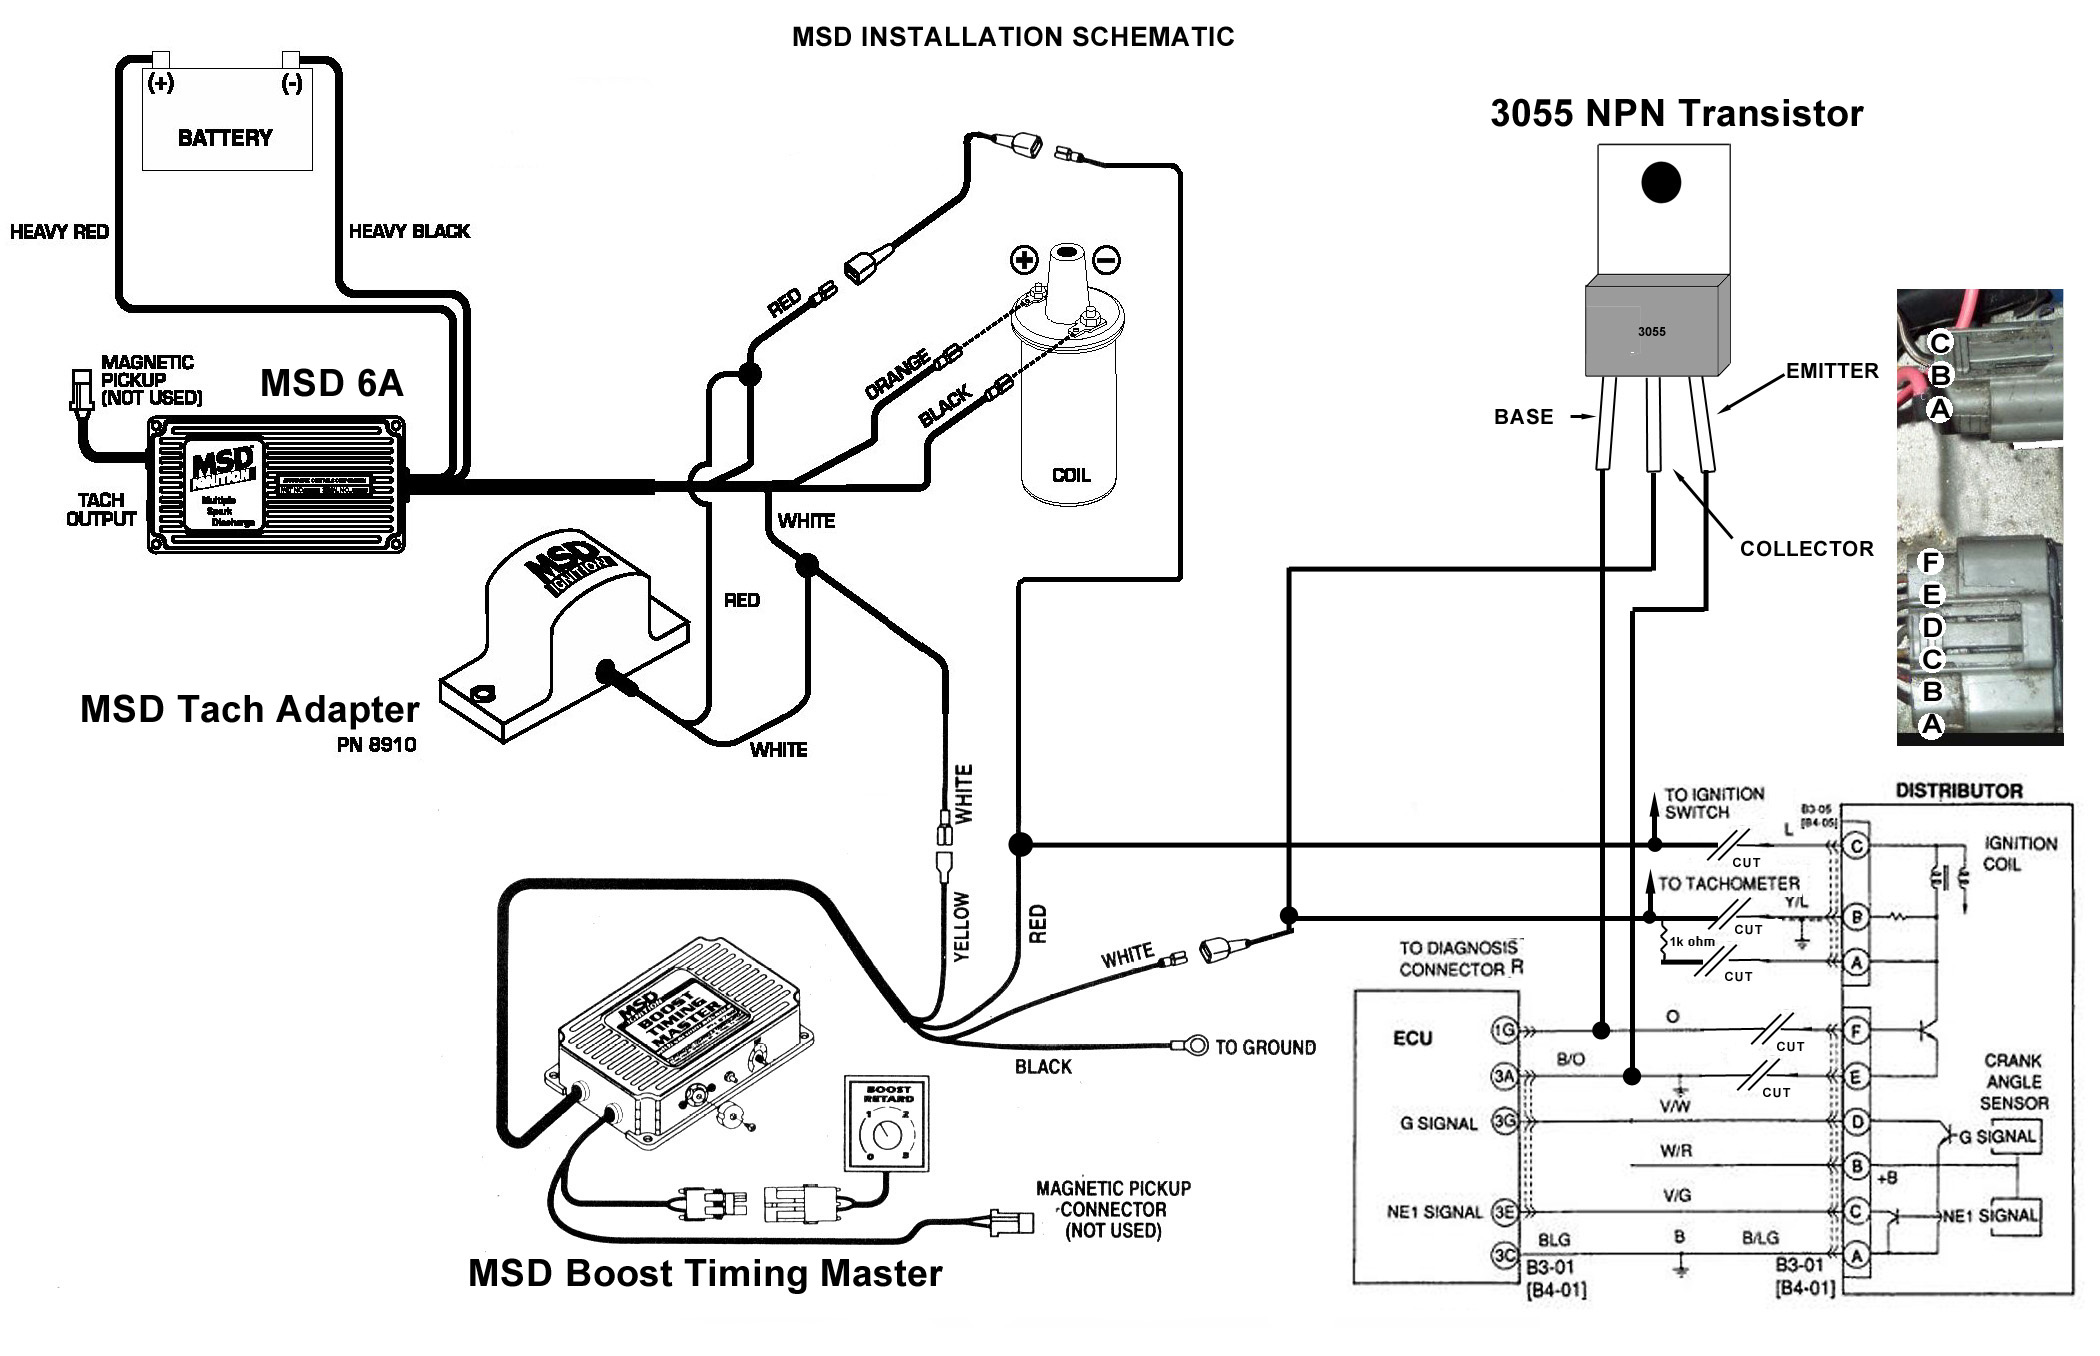 msd_complete msd wiring diagram mazda mx 6 forum miata ignition switch wiring diagram at soozxer.org